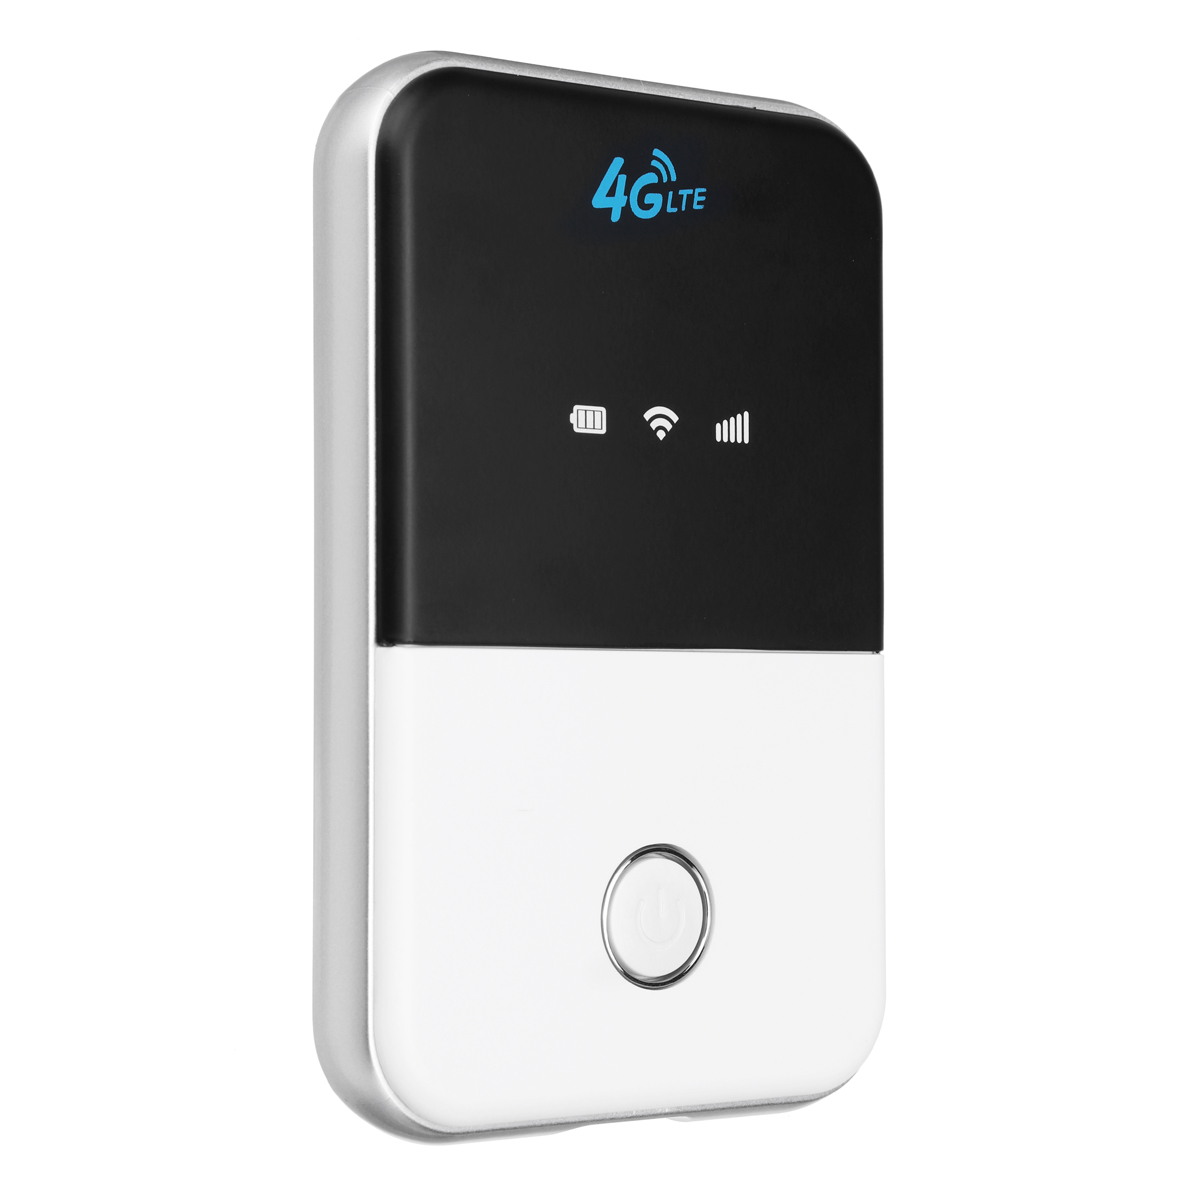 4G LTE Wireless Mobile WiFi Router Pocket Outdoor Hotspot Modem Broadband MF903 4 Mode/MF905 5 Mode